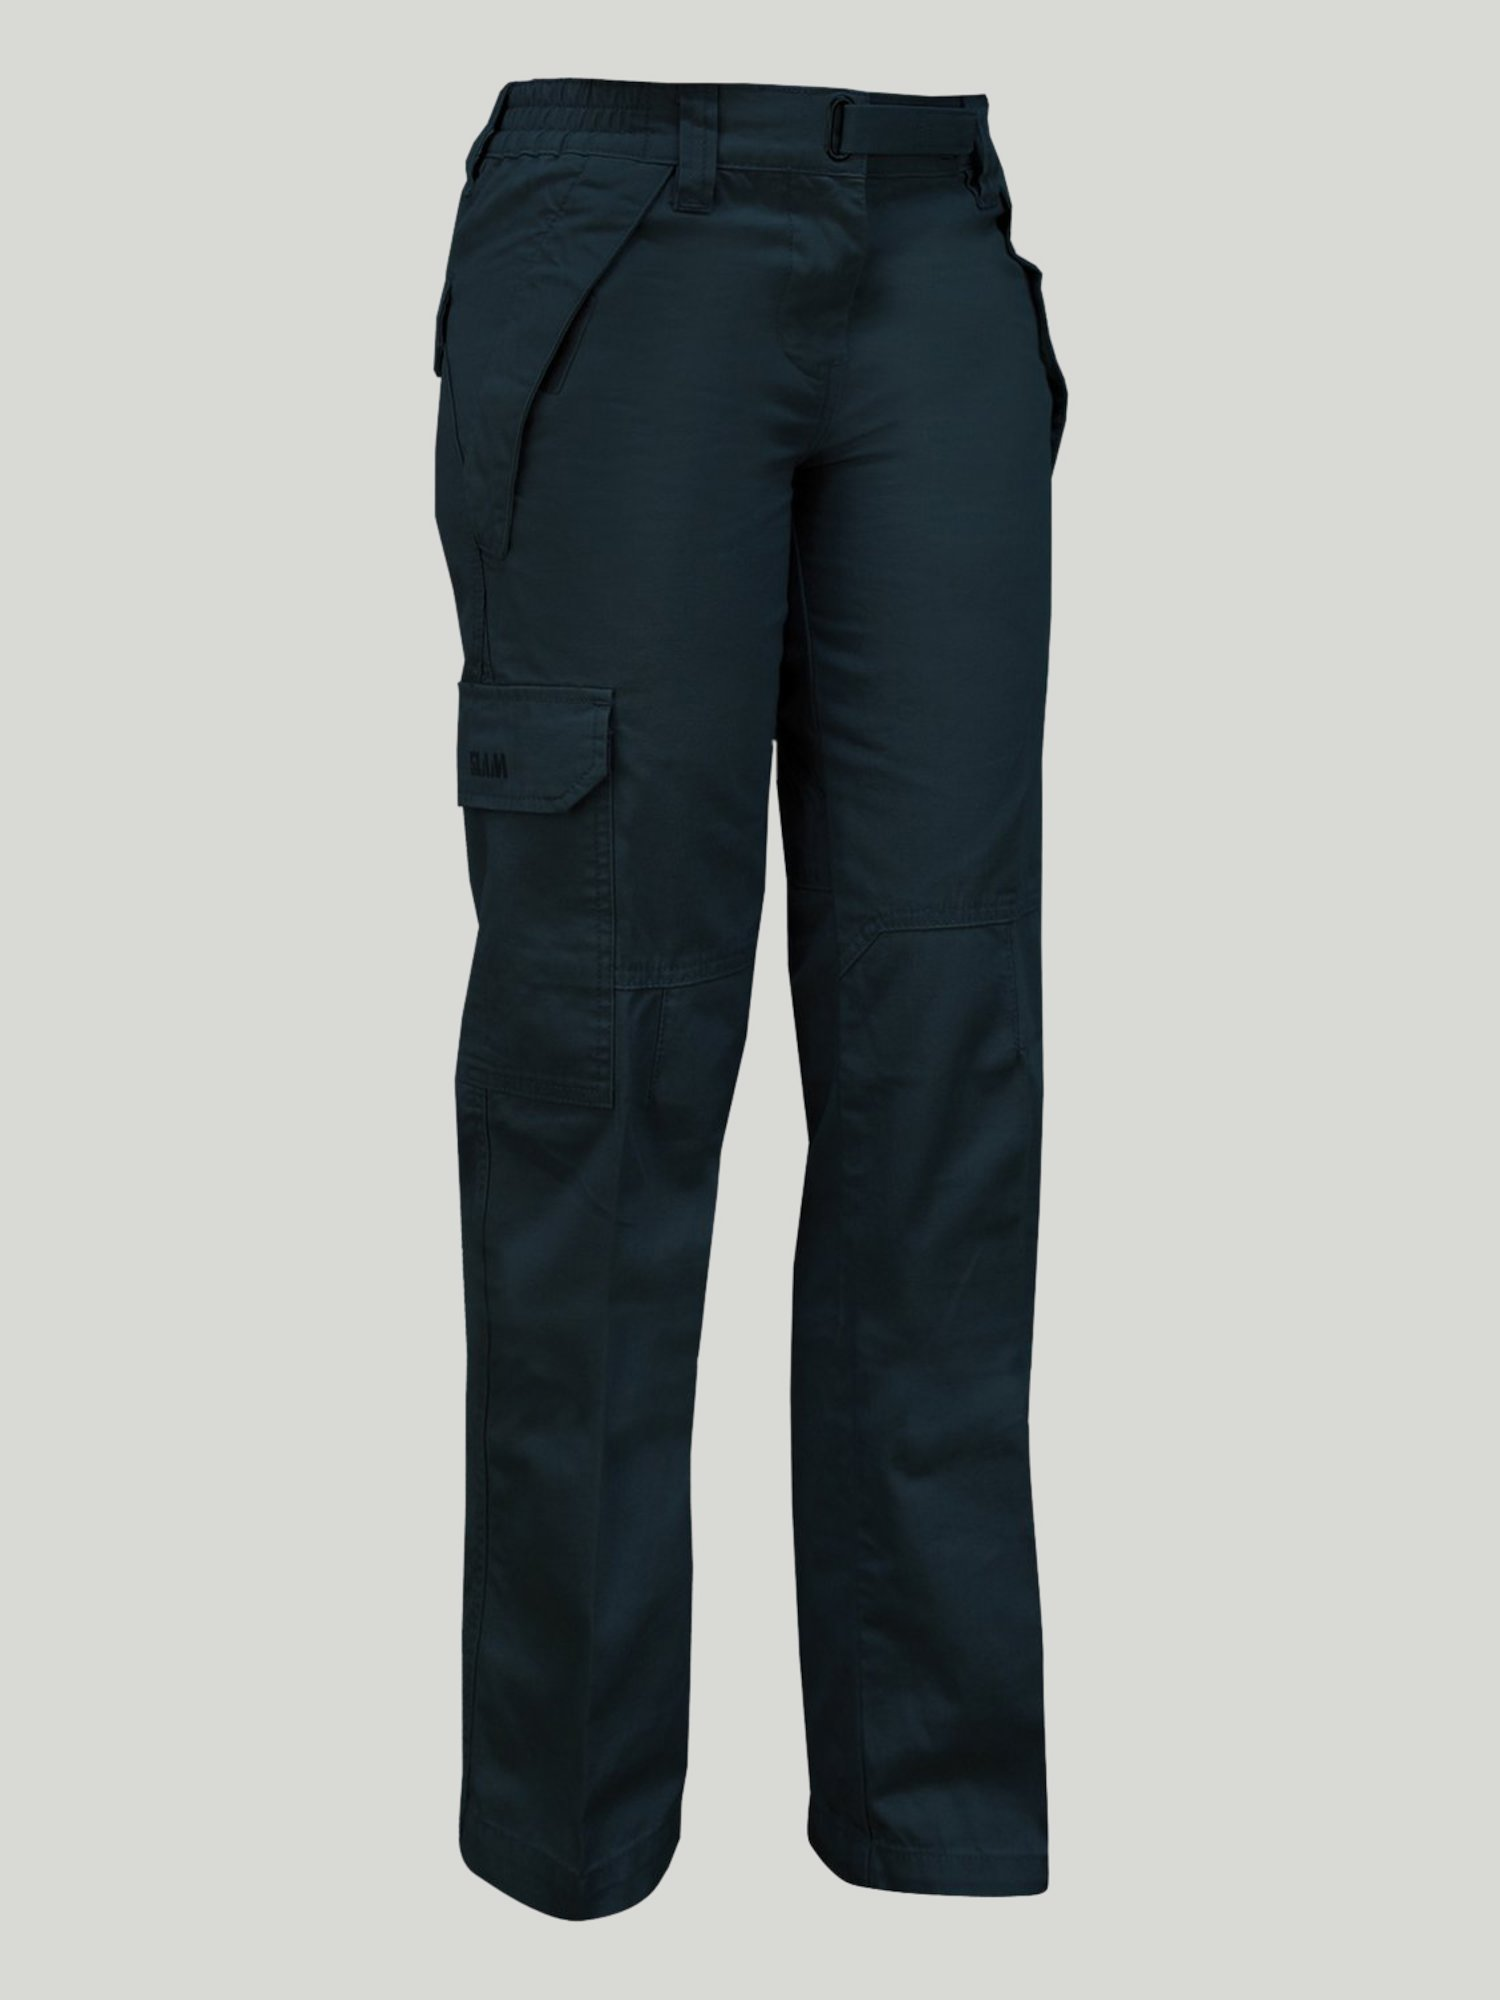 Trousers Vela Woman New - Navy